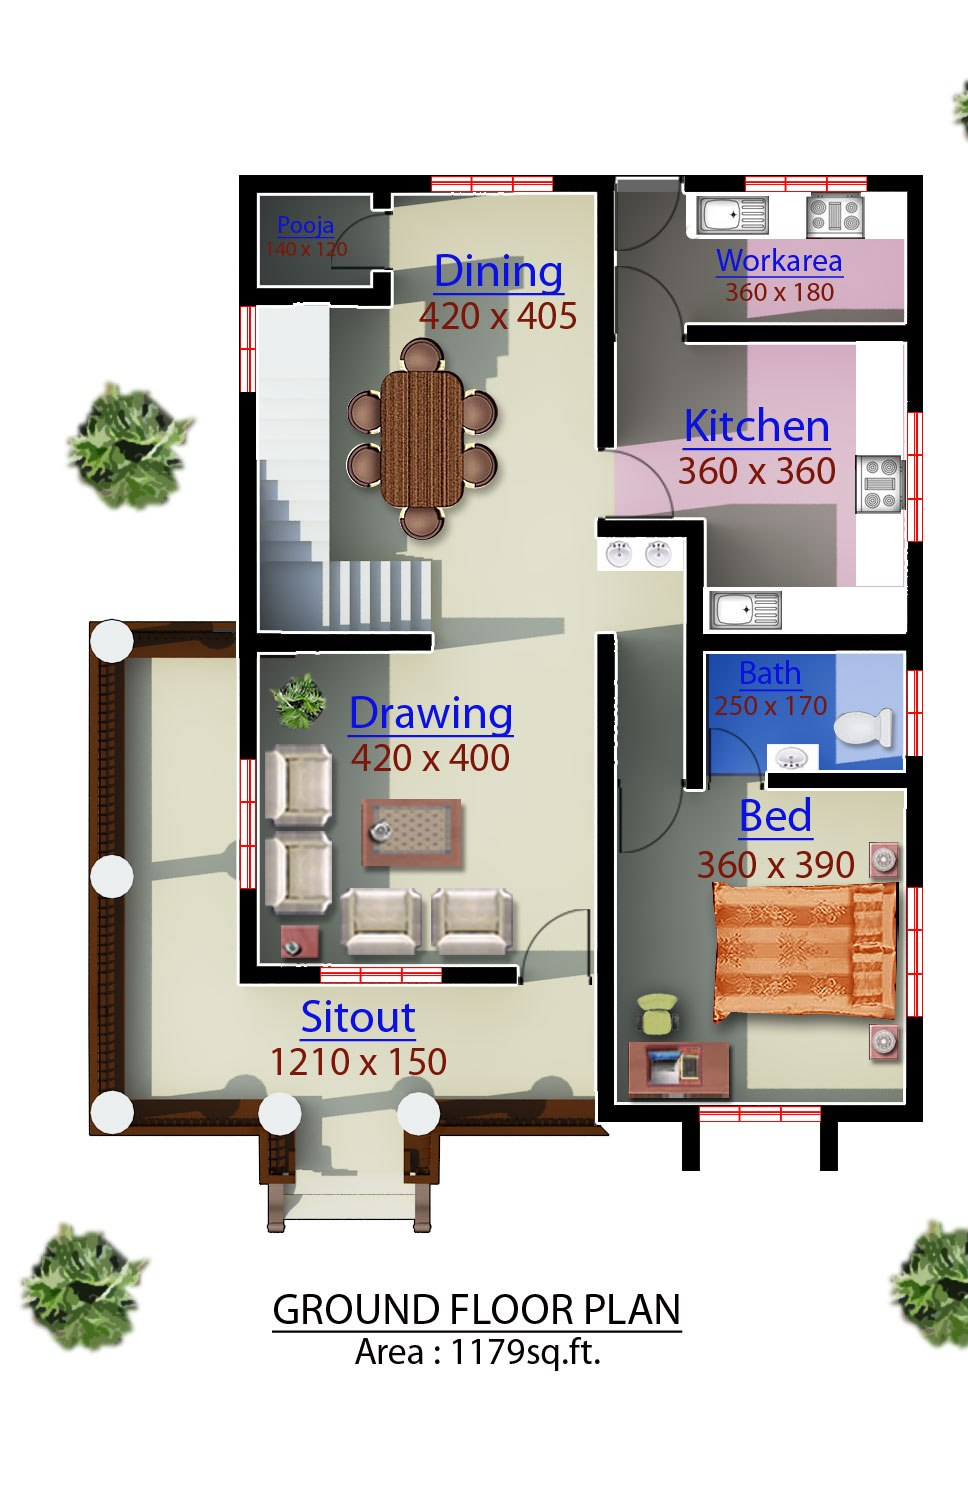 3 bedroom kerala house plans joy studio design gallery for Modern house plans for 1600 sq ft